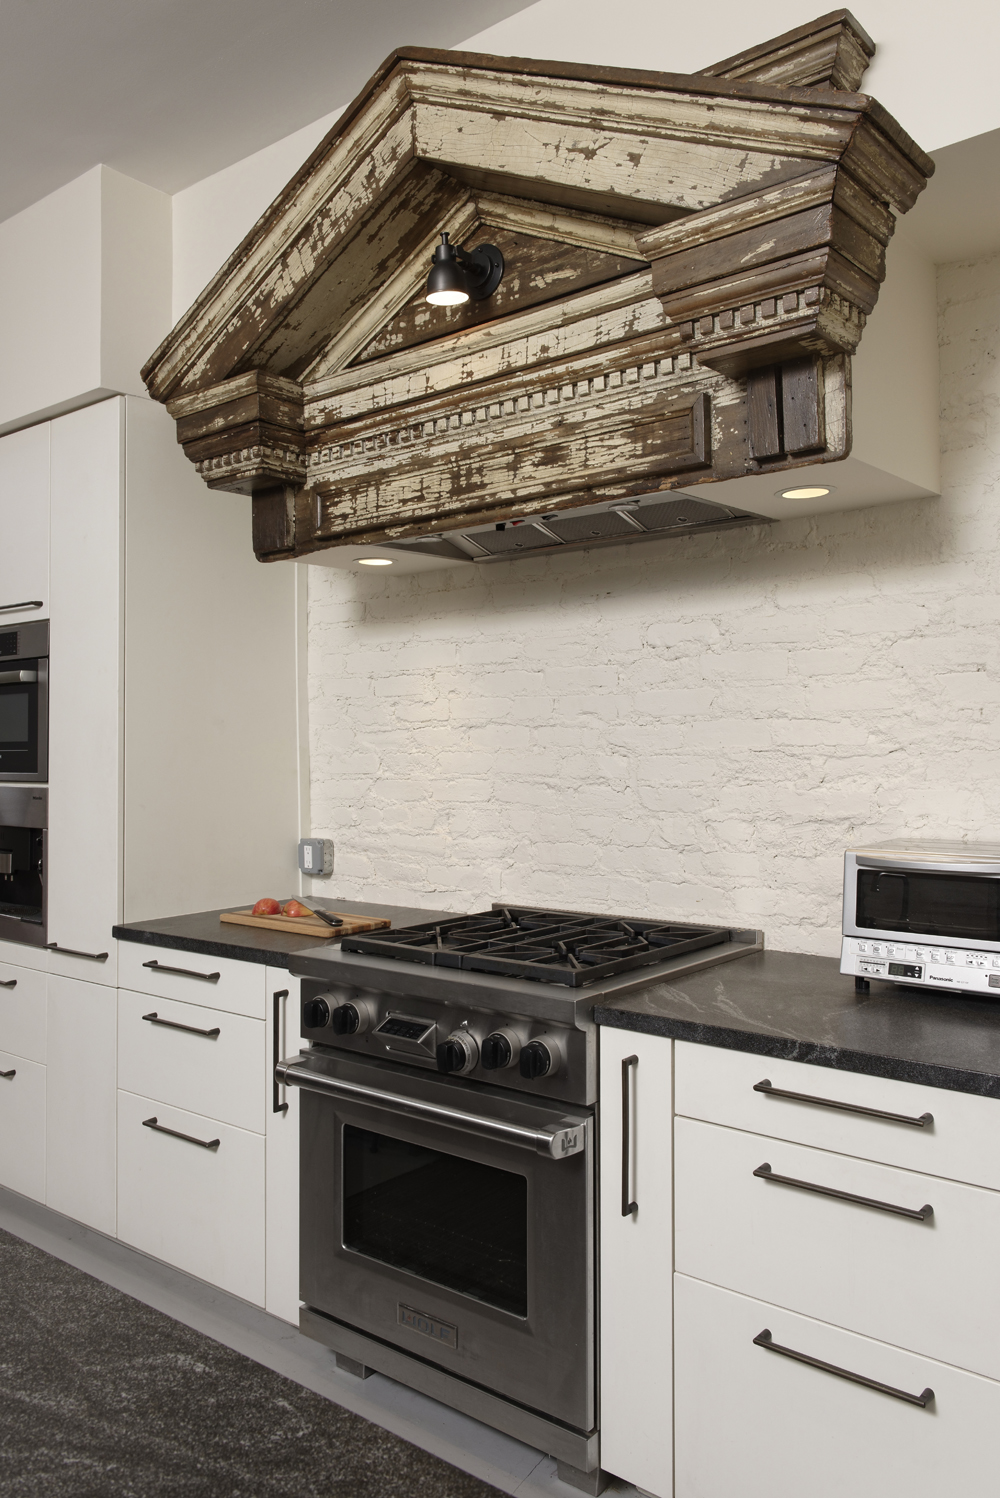 BOWA Design Build Row Home Renovation In Washington, DC Industrial Kitchen  Stove Hood